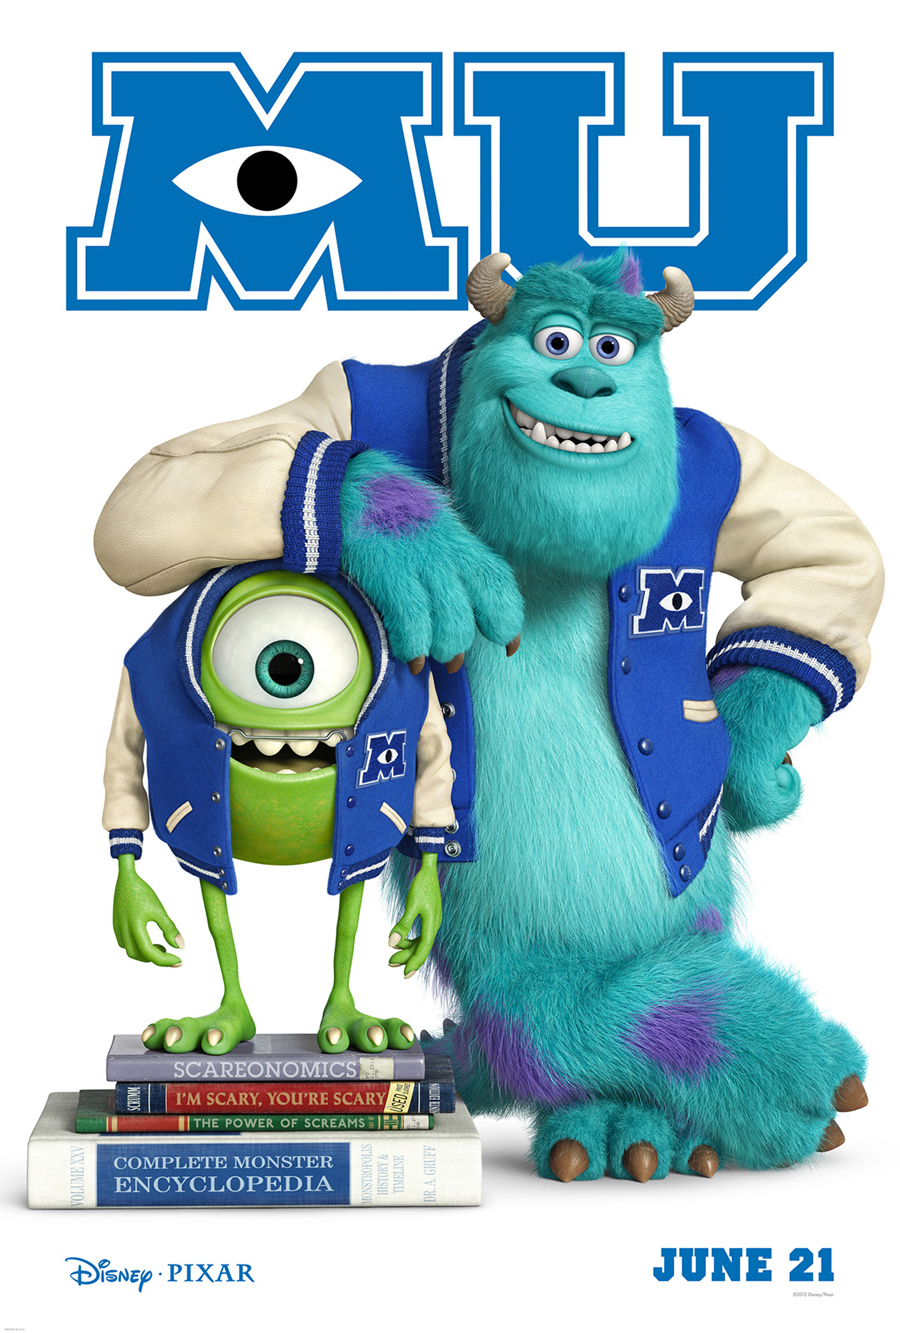 http://vignette2.wikia.nocookie.net/pixar/images/8/8e/Monsters_uni_post_2.jpg/revision/latest?cb=20121130154523